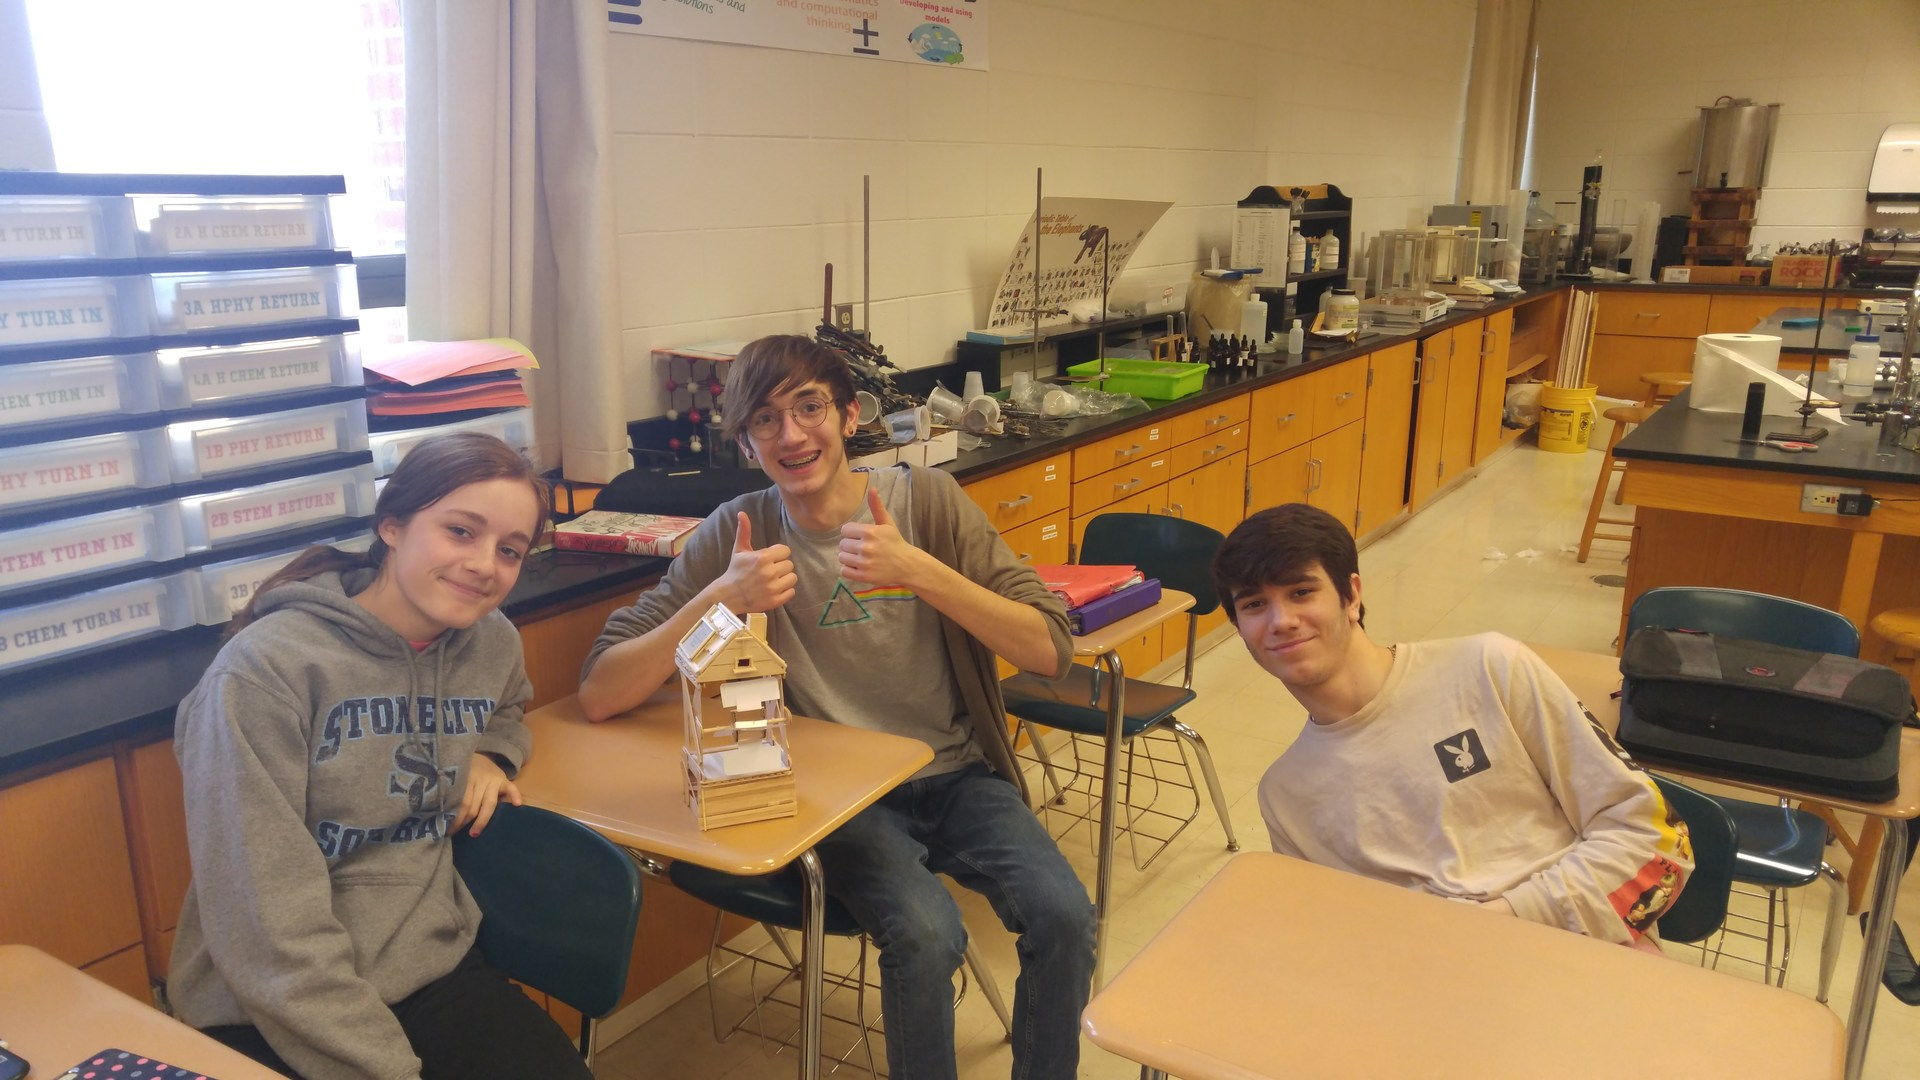 Students in Science of the Modern World showing off their wind turbine.